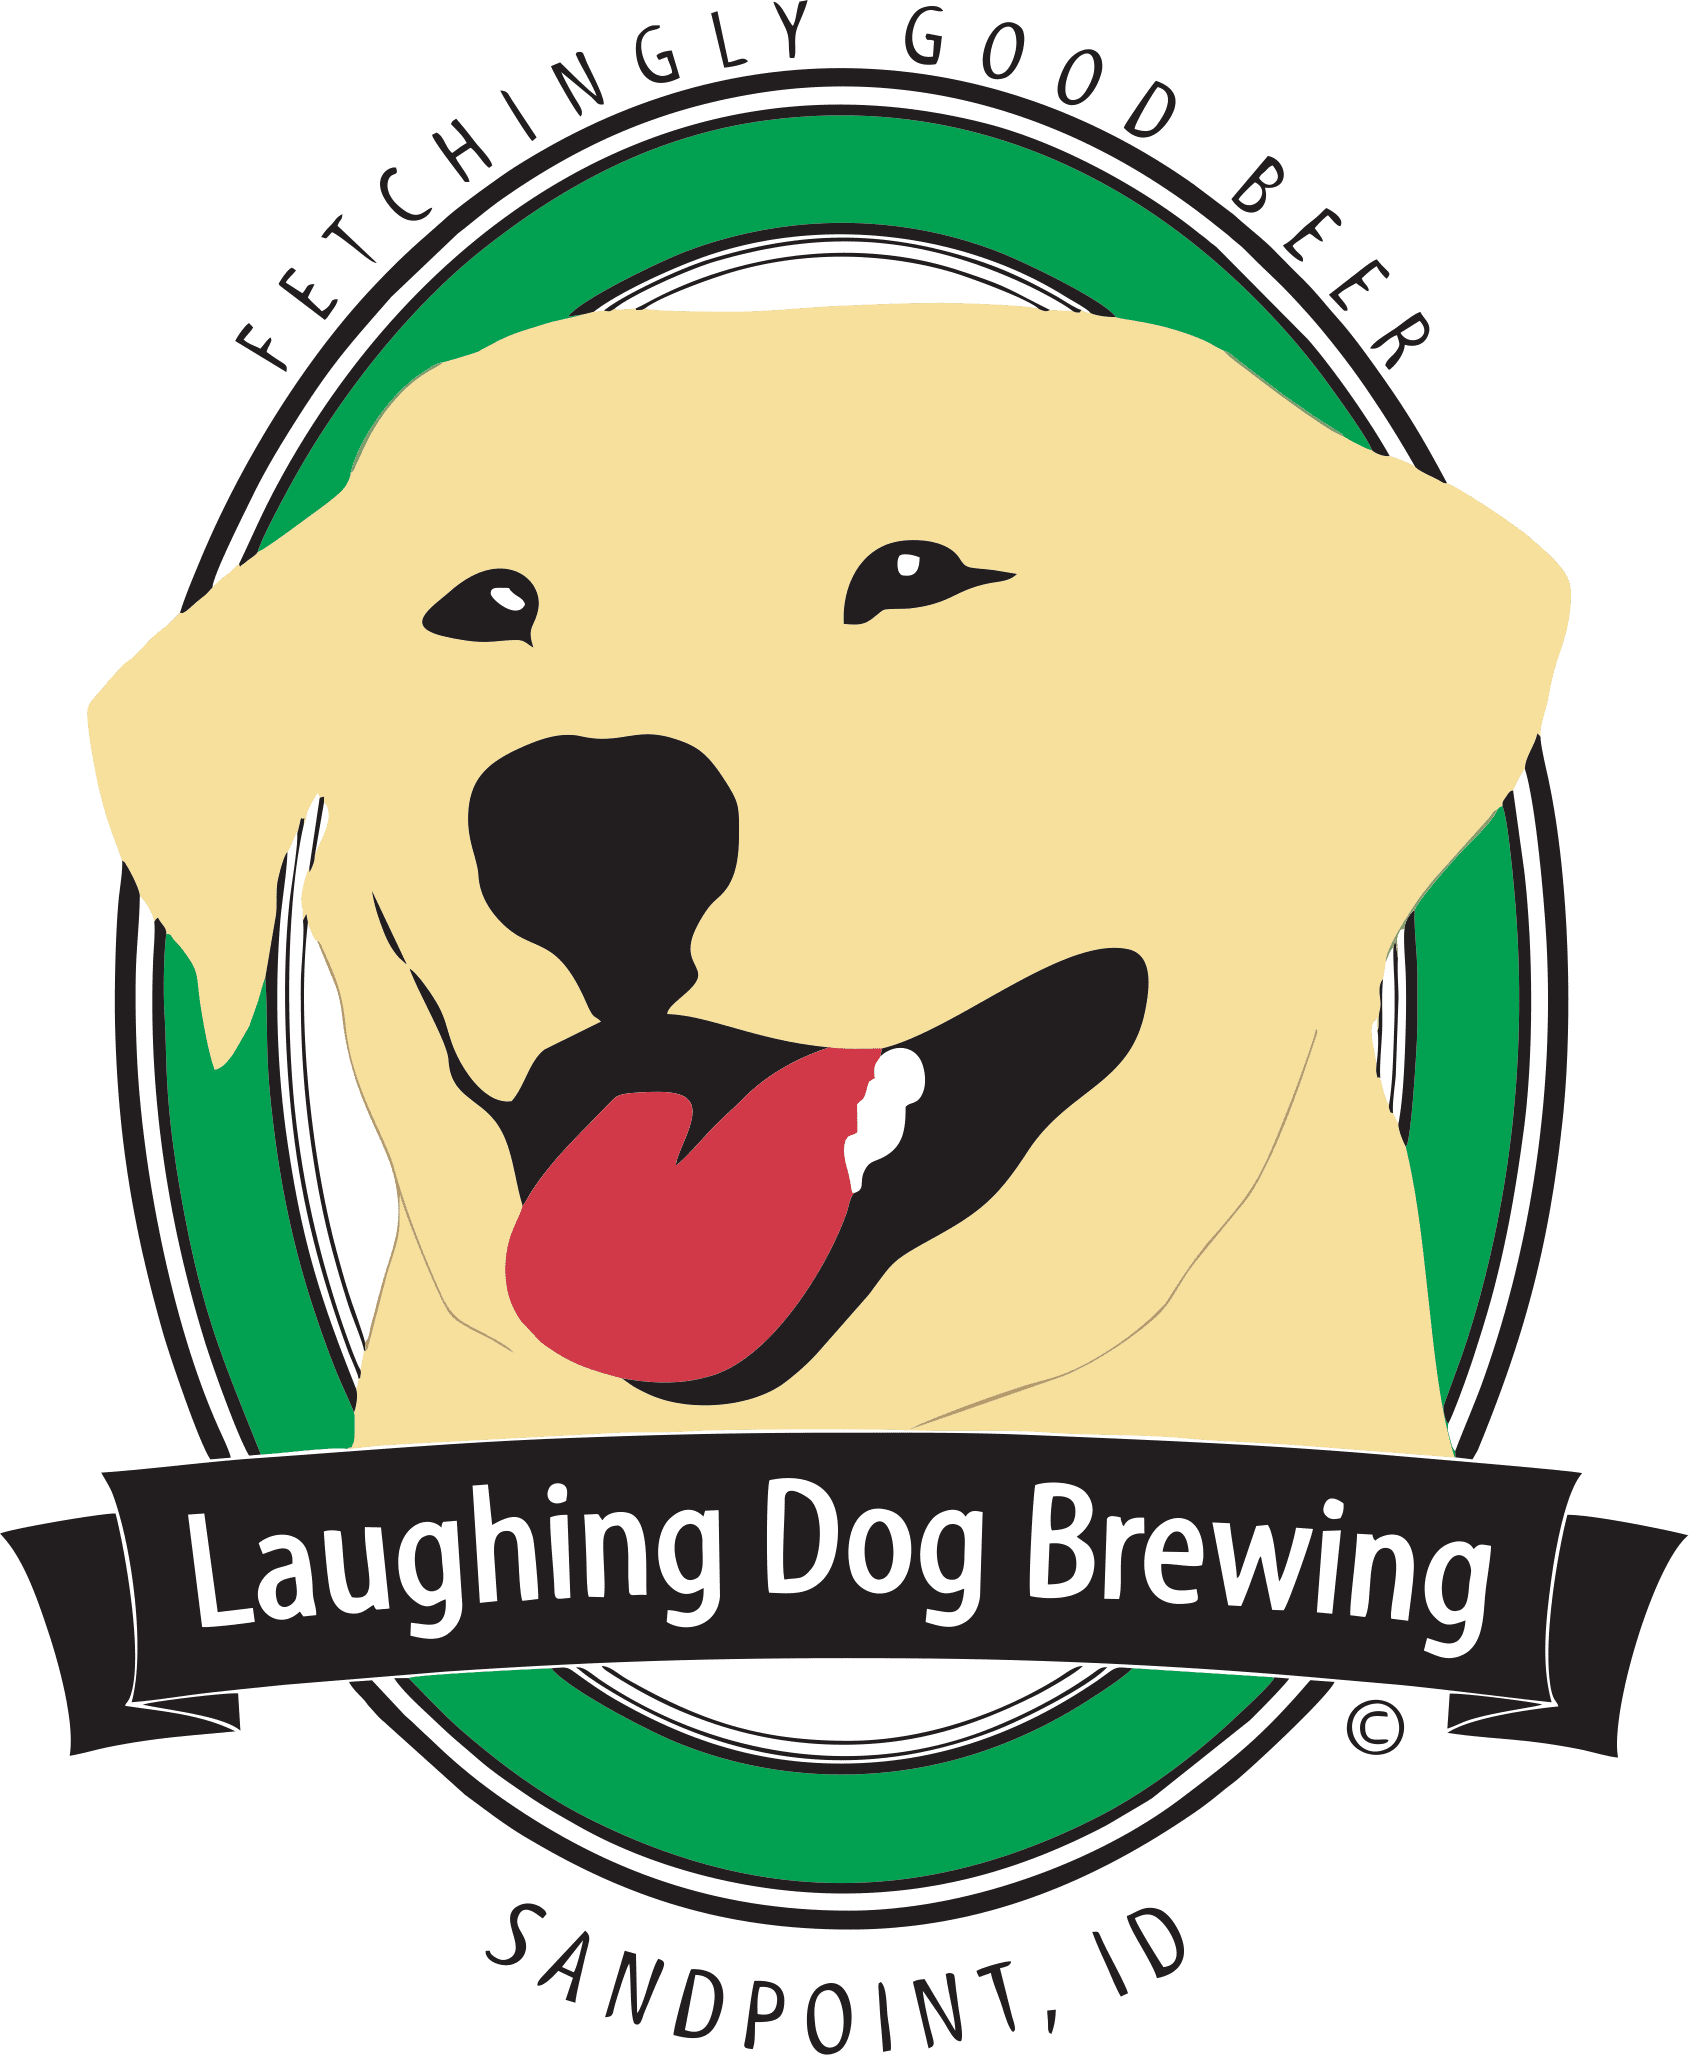 8 laughing dog